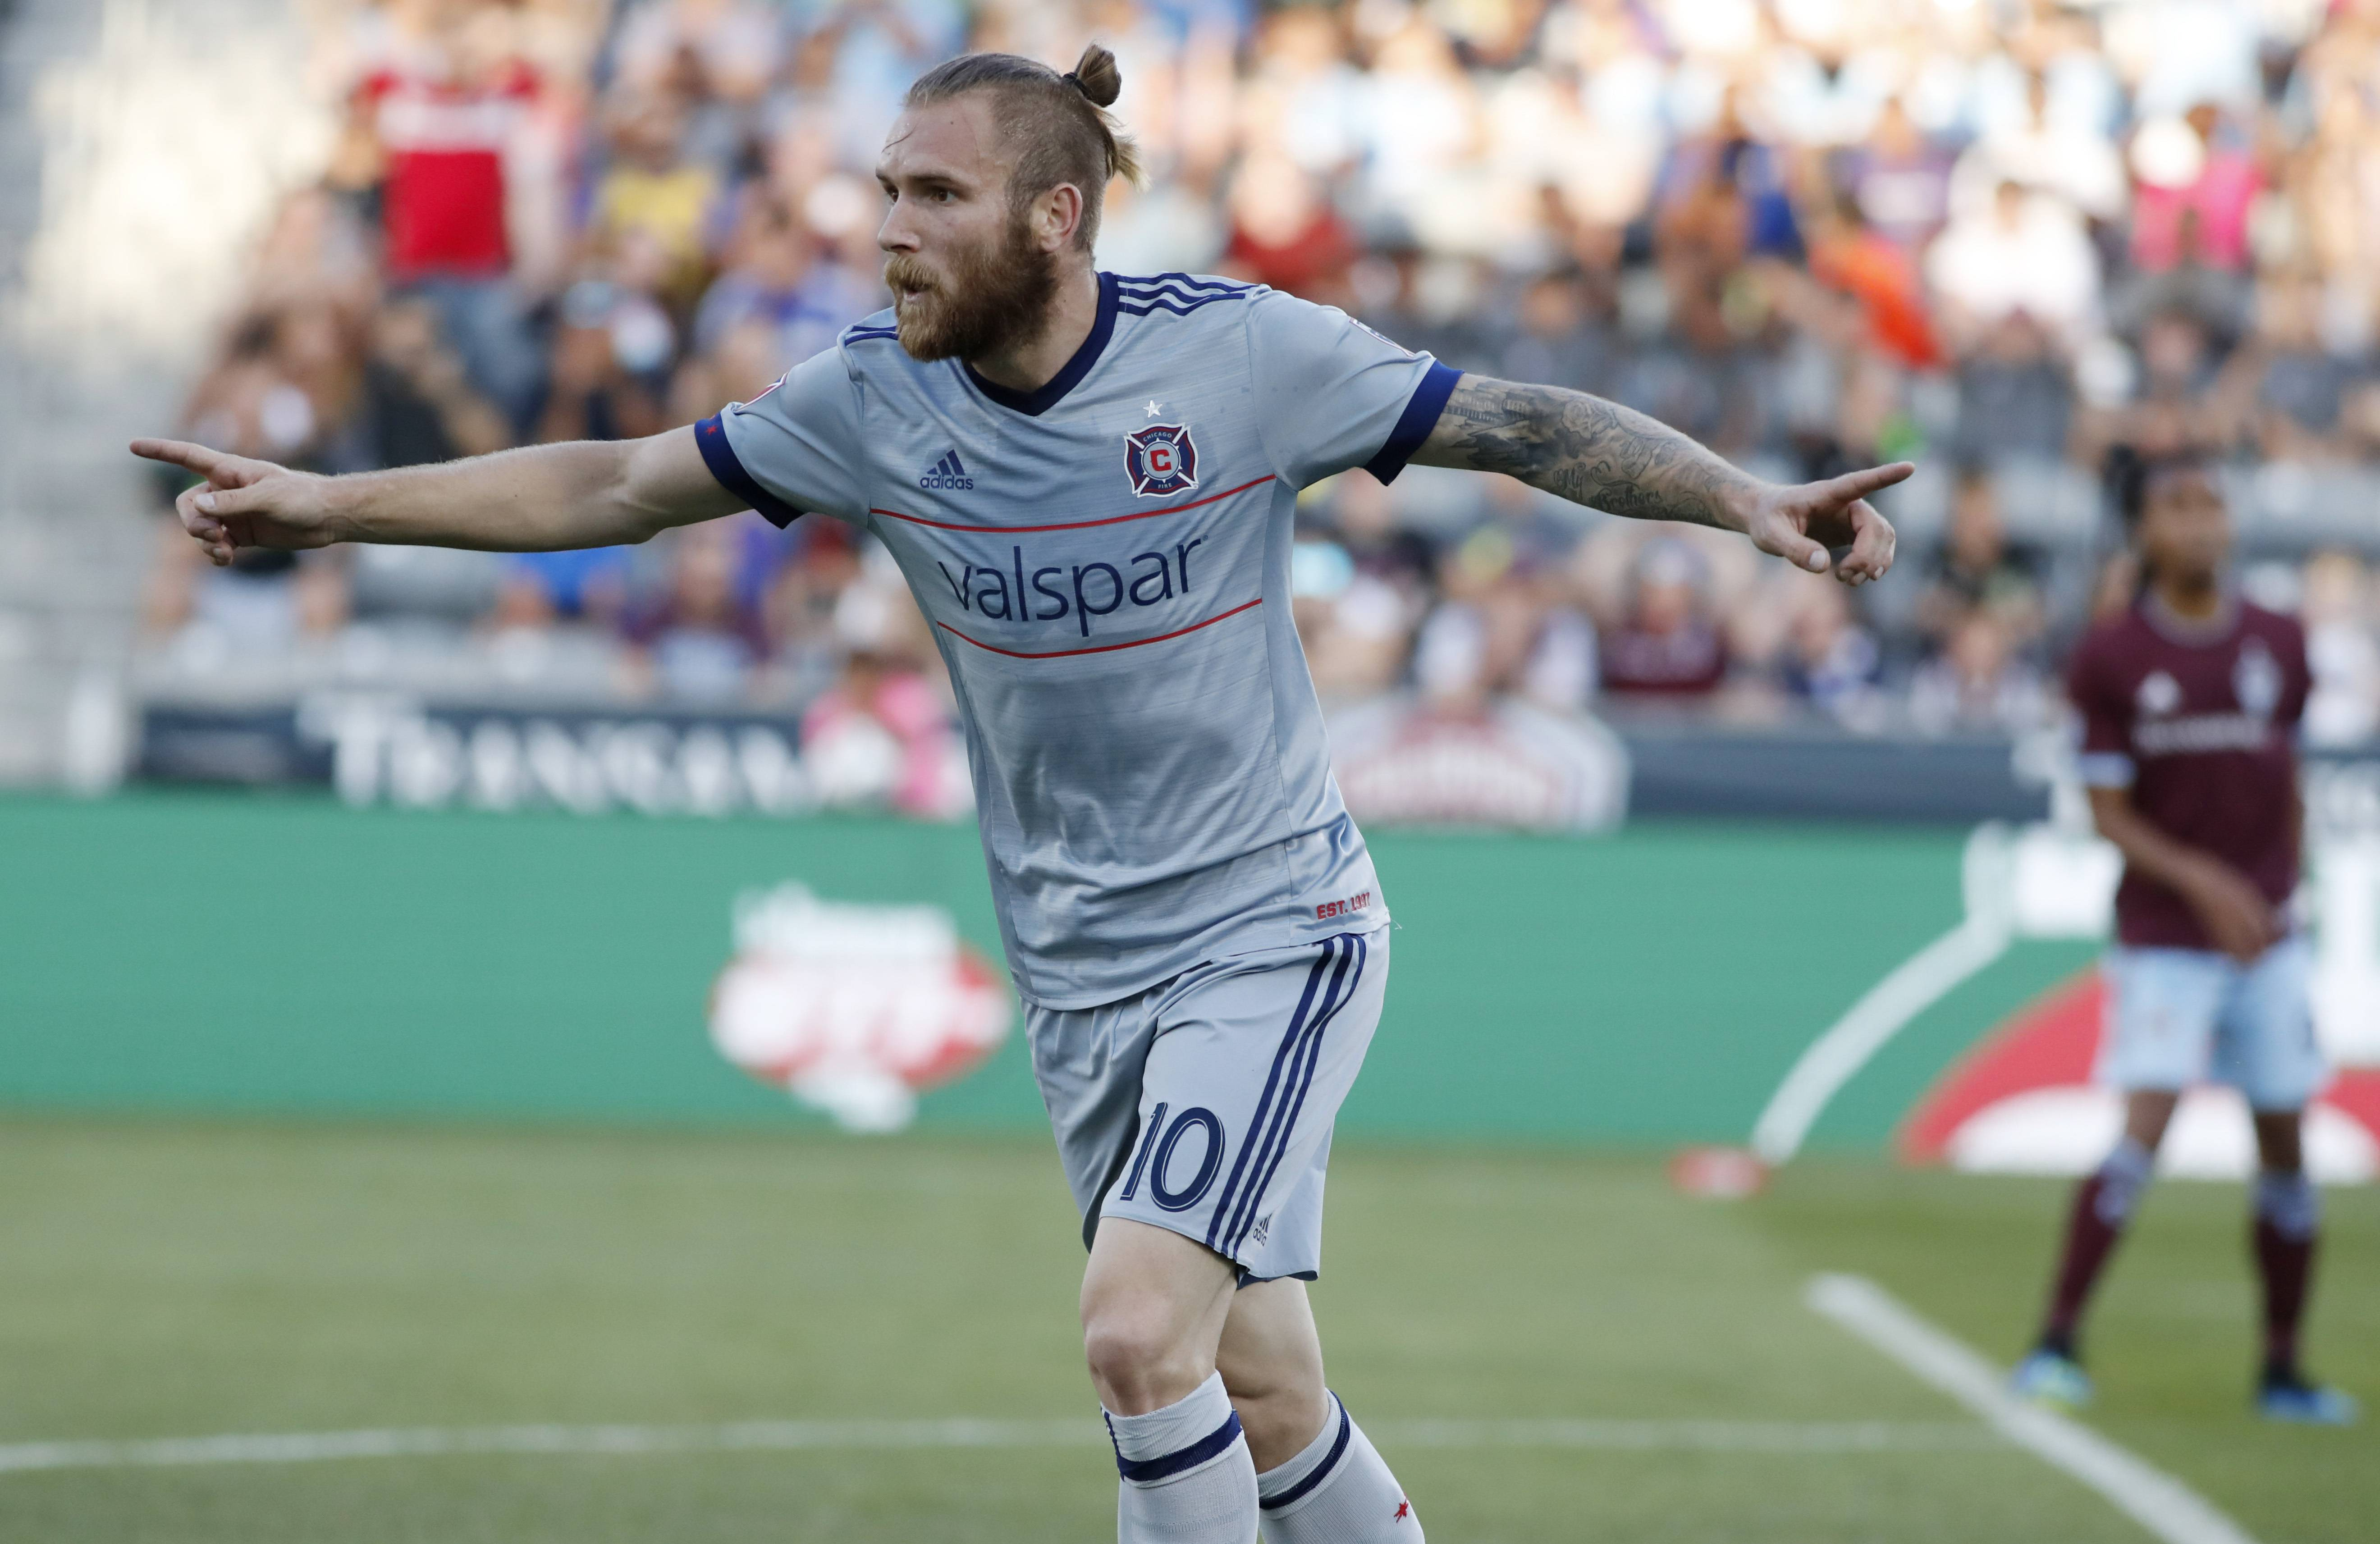 Chicago Fire forward Aleksandar Katai reacts after scoring a goal past Colorado Rapids goalkeeper Tim Howard during the first half of an MLS soccer match Wednesday, June 13, 2018, in Commerce City, Colo.